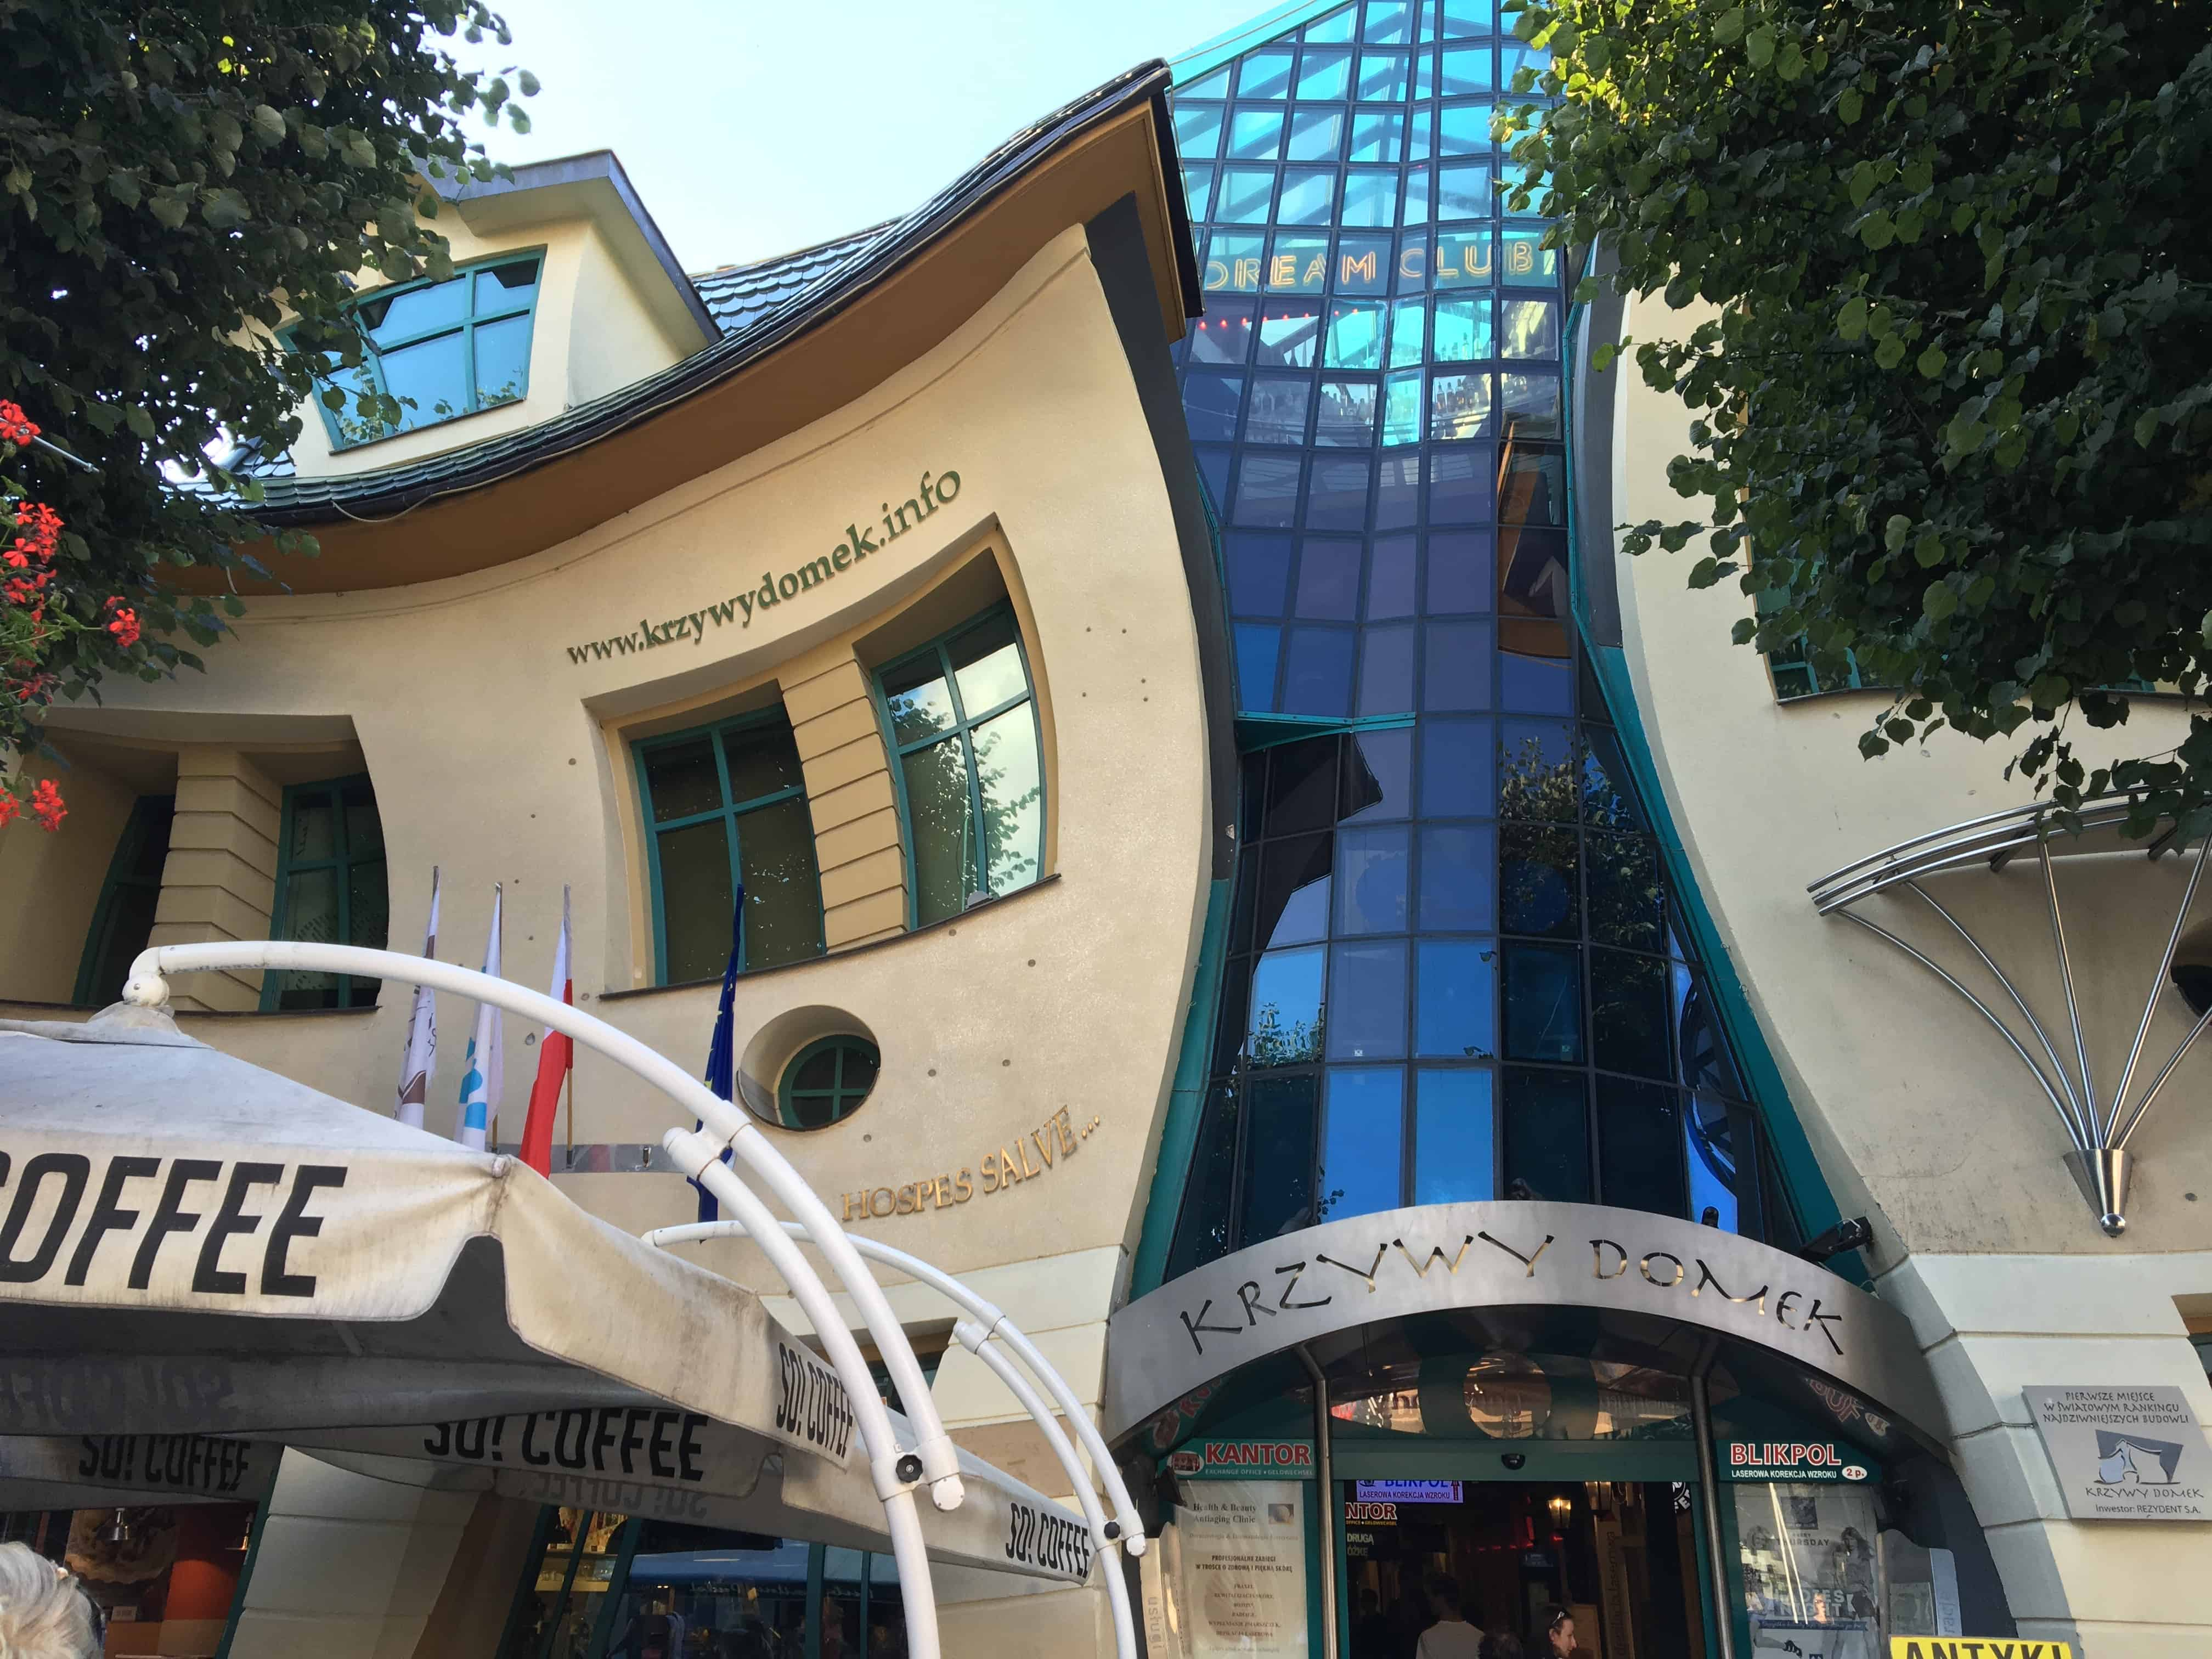 Must visit places in Poland - Sopot crooked house